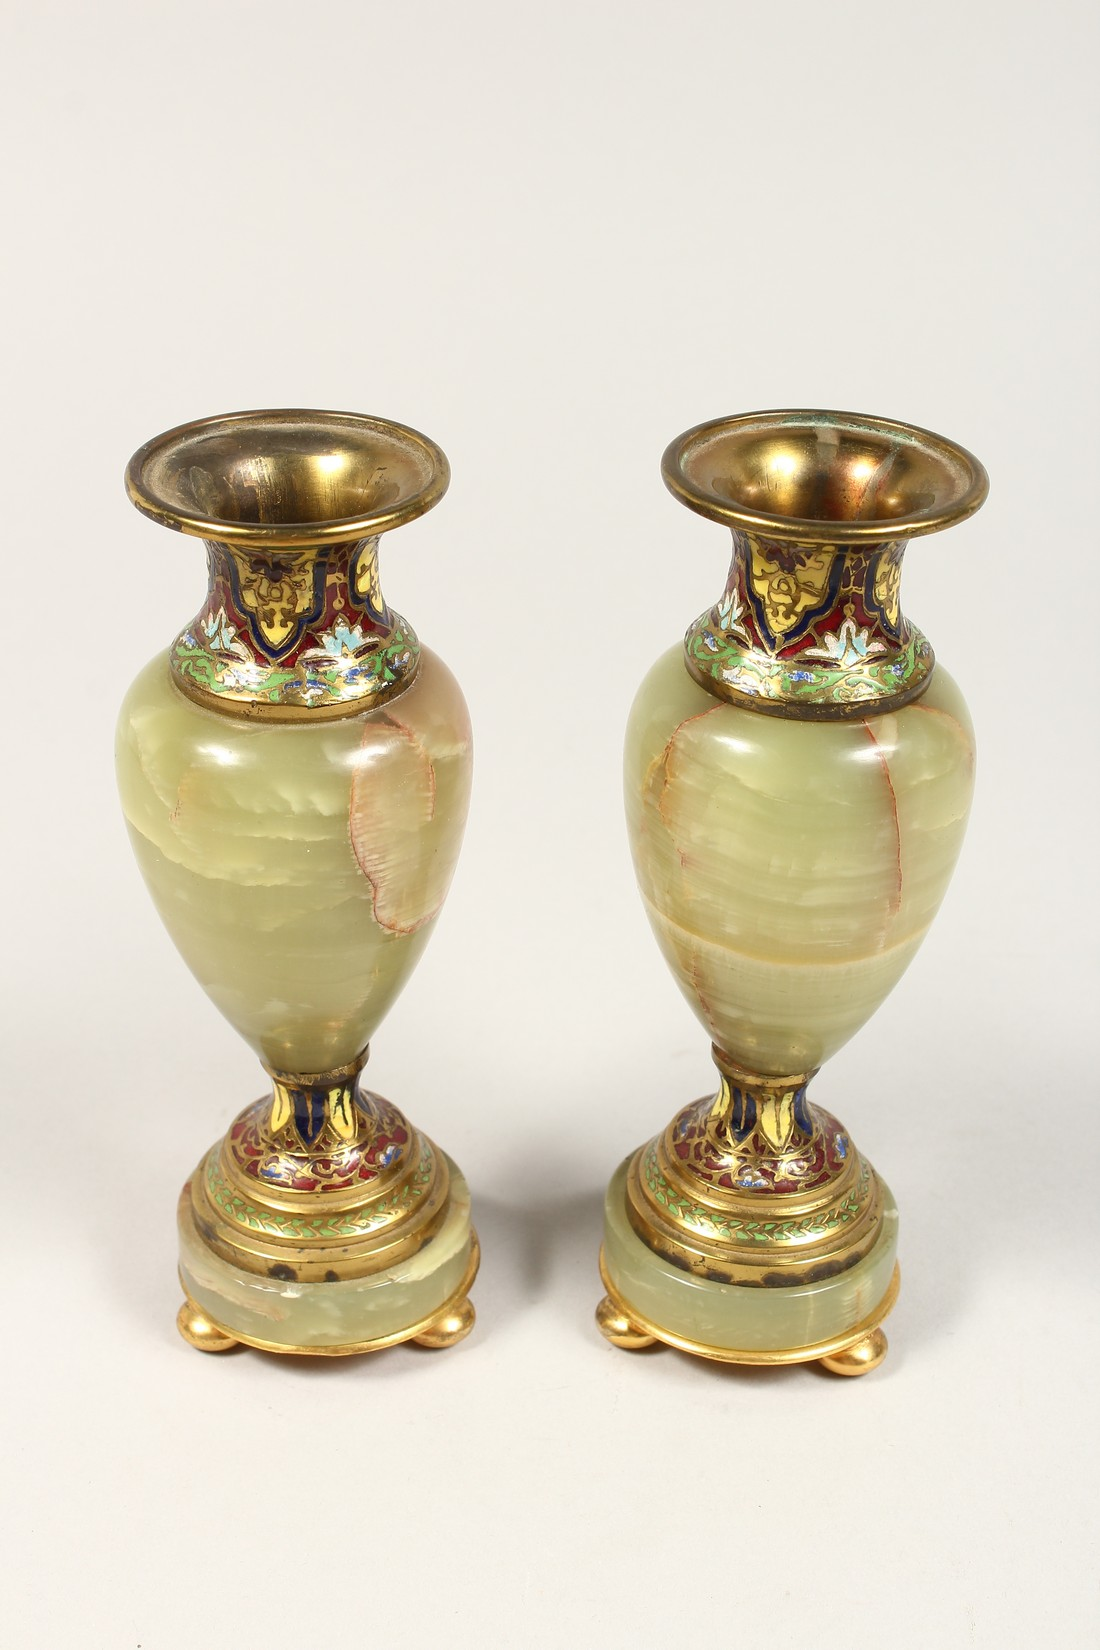 A GOOD SMALL PAIR OF FRENCH CHAMPAGNE ENAMEL AND ONYX VASES. 6.5ins high. - Image 2 of 5